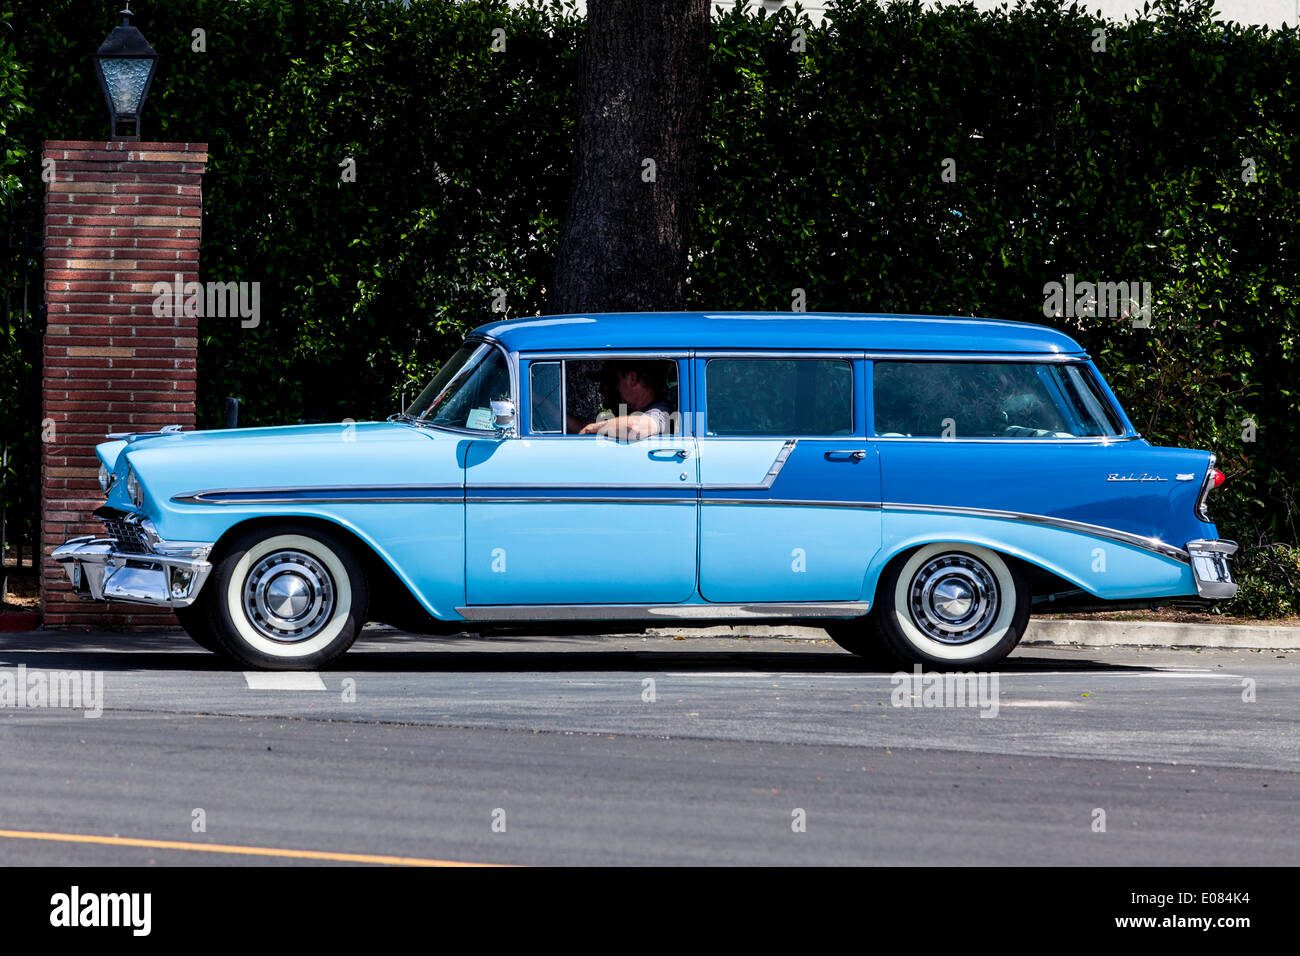 A 1956 chevy station wagon